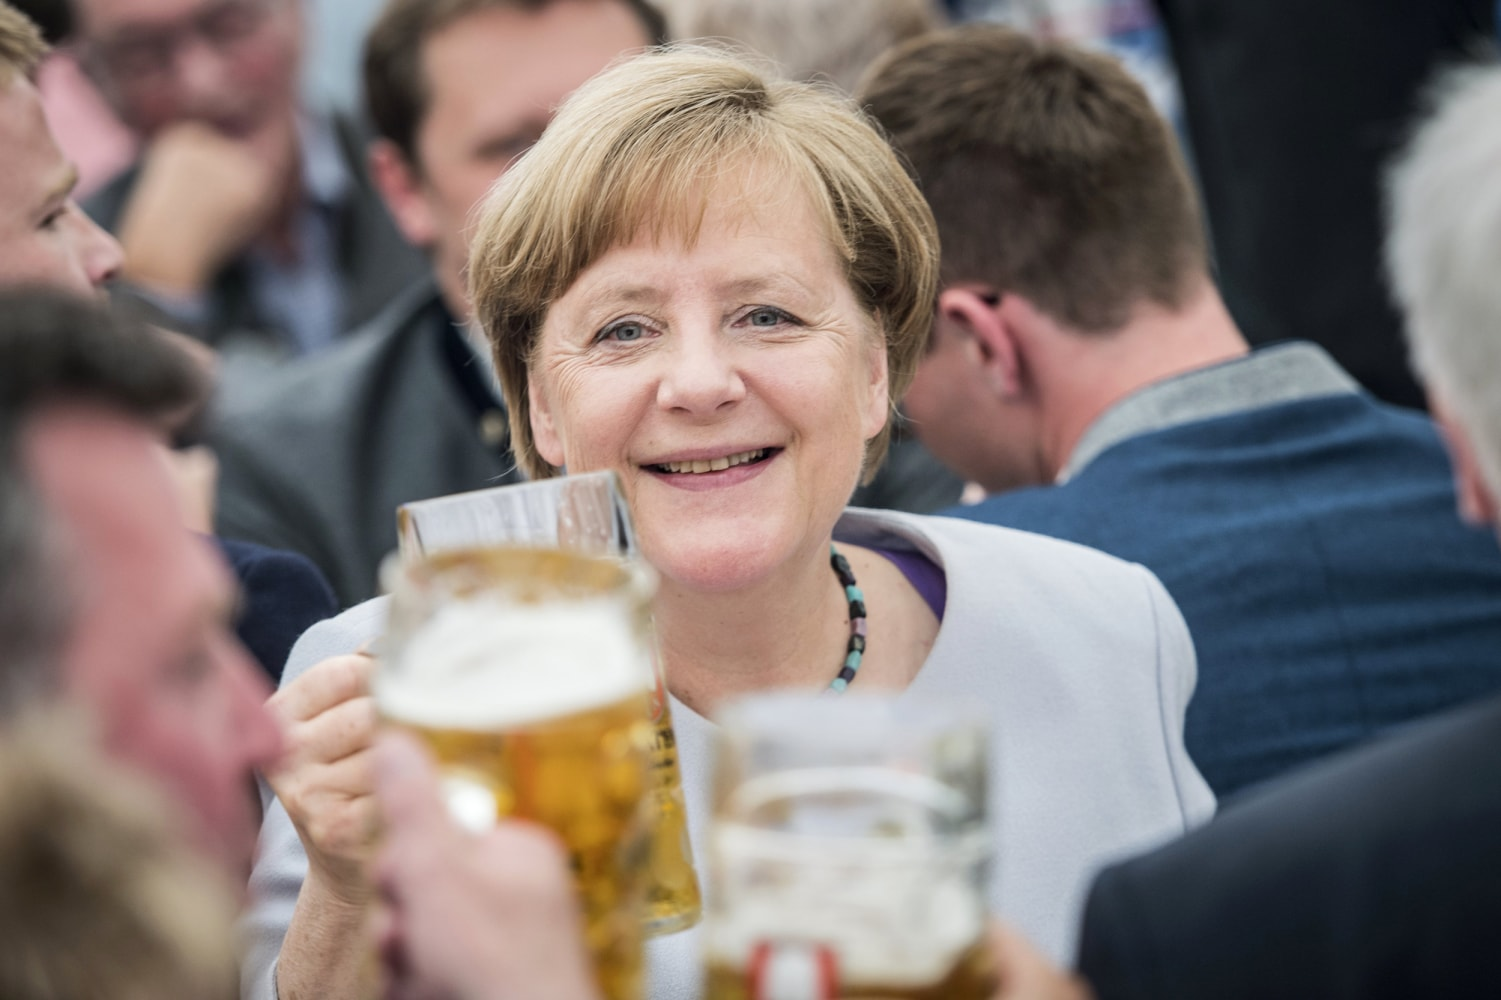 GERMANY: Europe can't rely on US, UK - Merkel